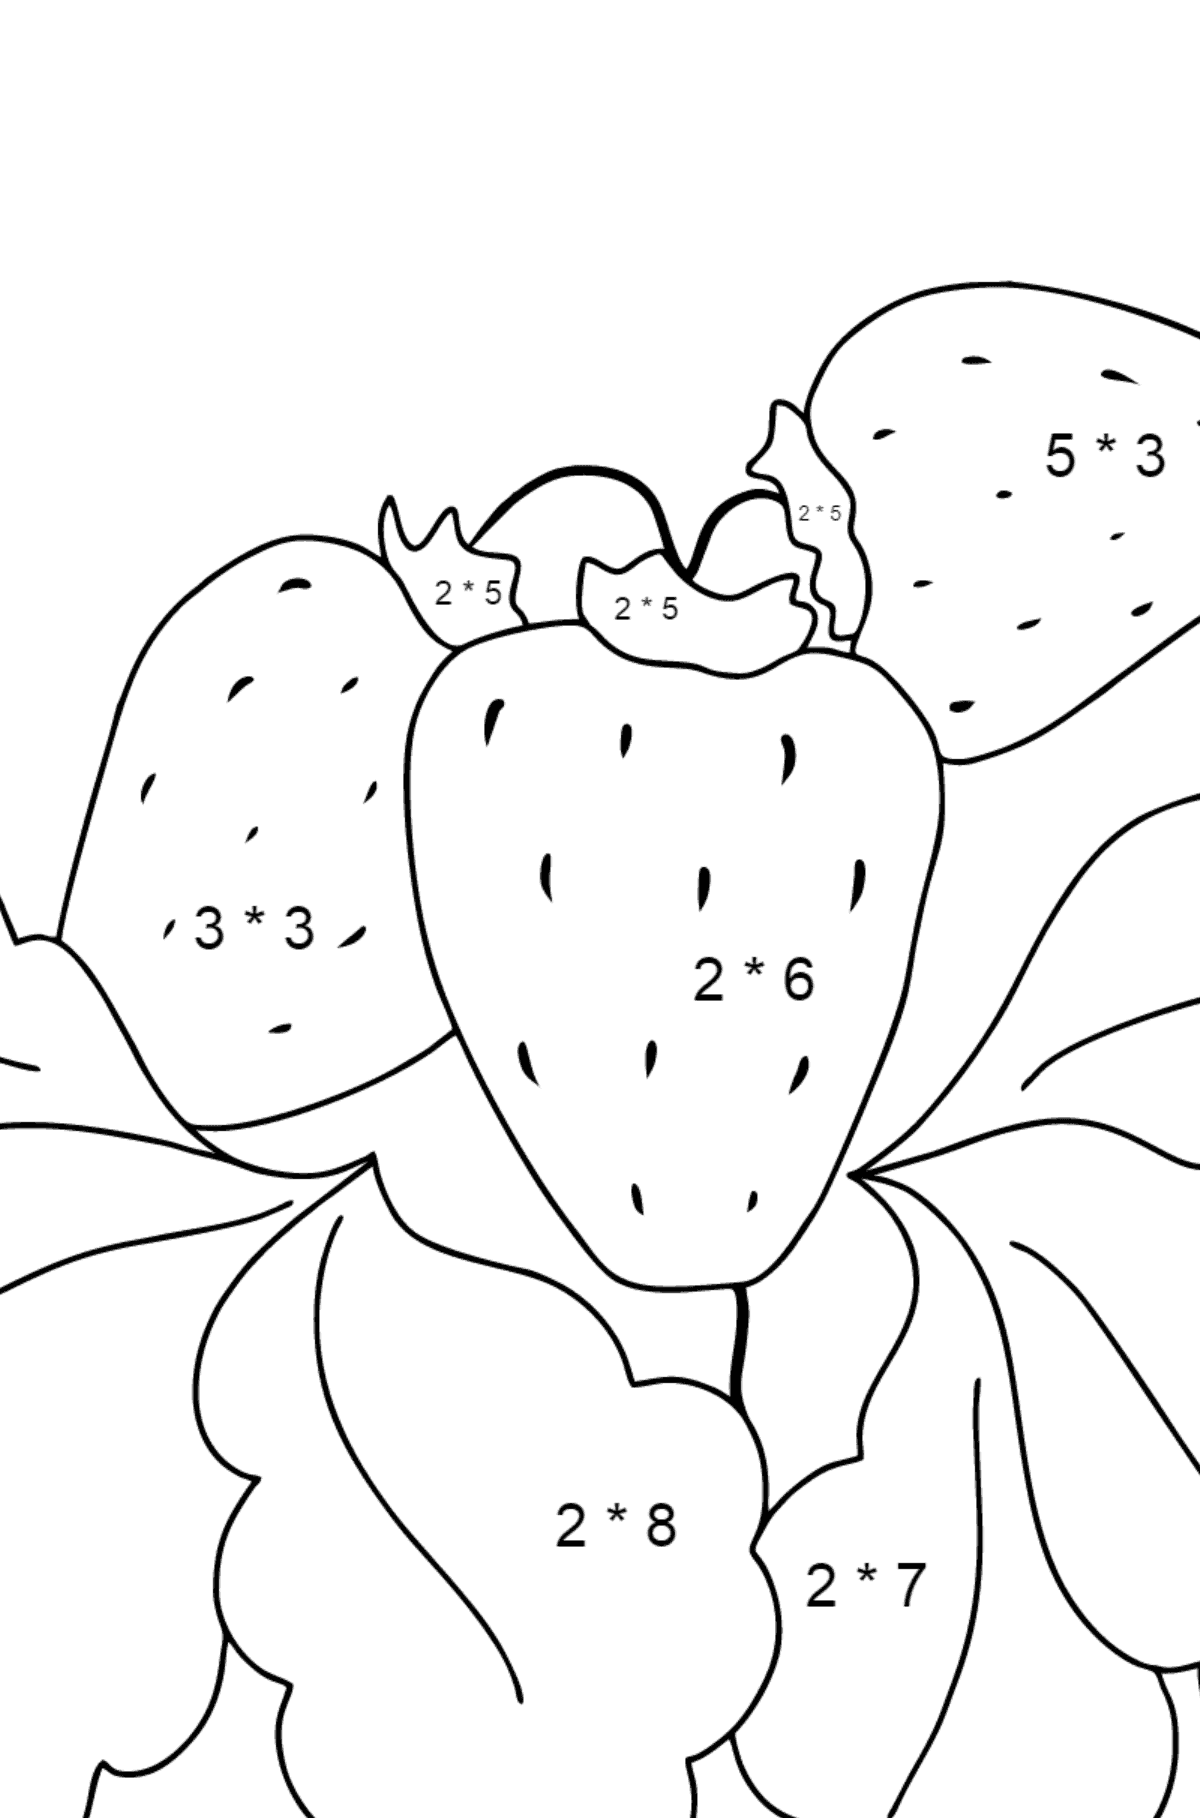 Coloring Page - Summer and Strawberries - Math Coloring - Multiplication for Kids